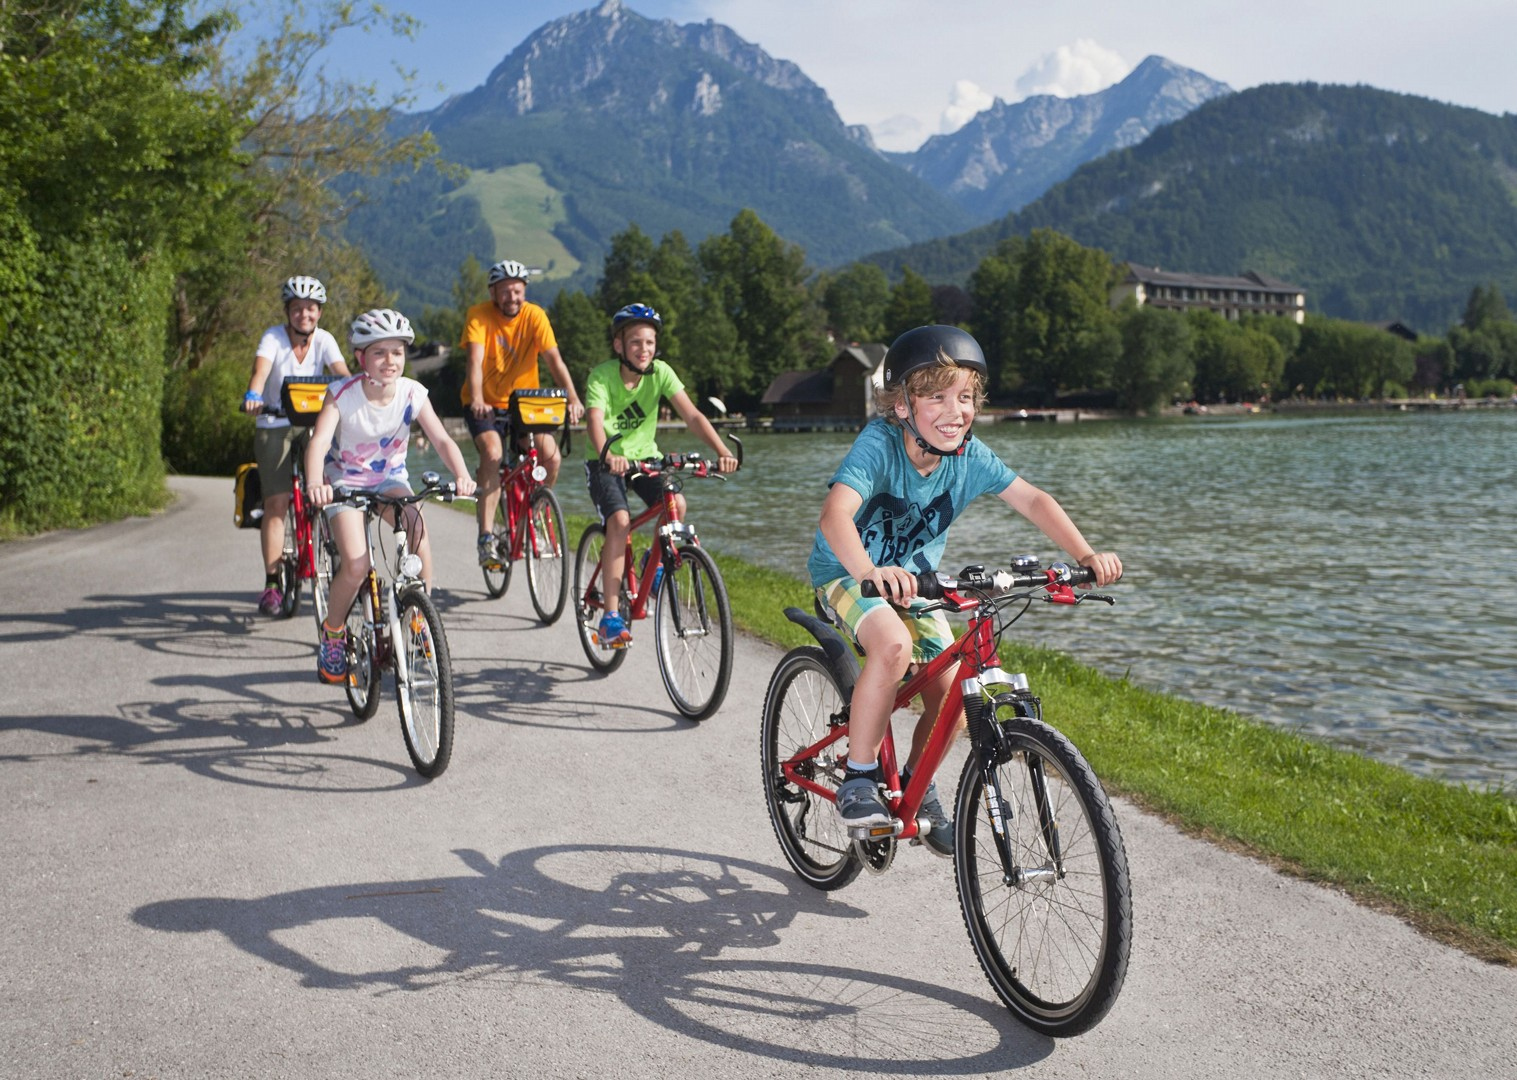 austria-austrian-lakes-self-guided-family-cycling-holiday.jpg - Austria - Salzburg's Lake District - Family Cycling